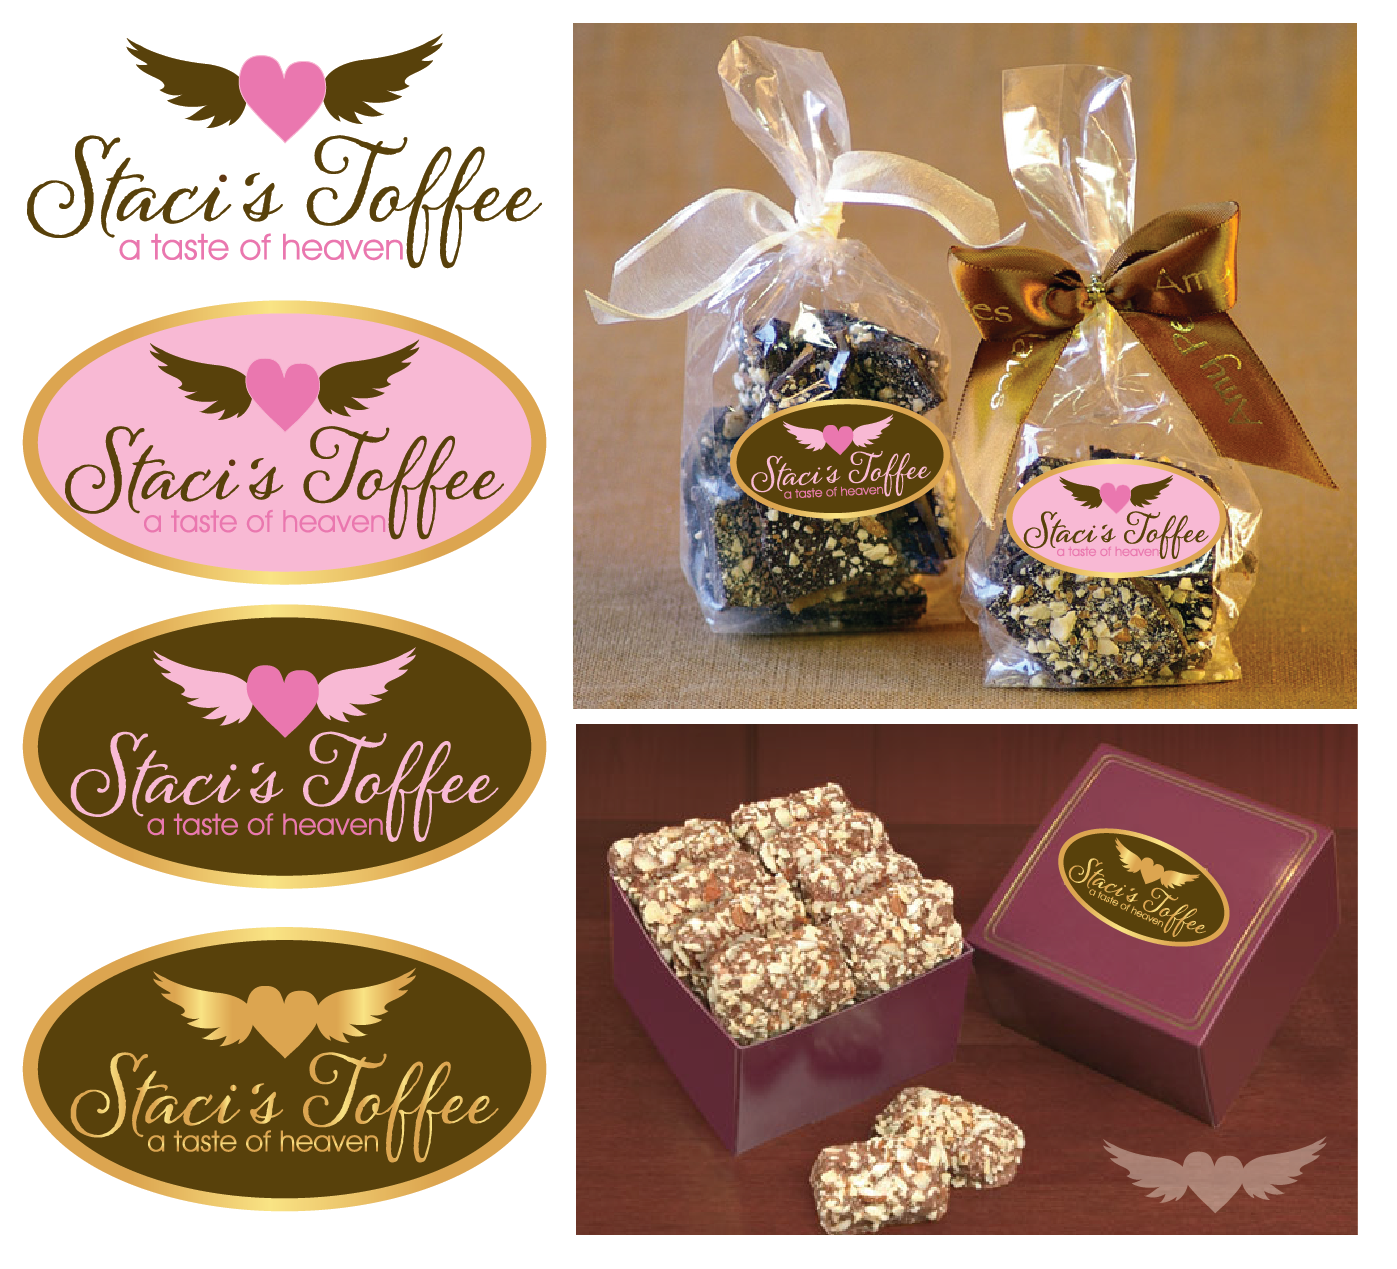 Help Staci's Toffee with a new logo